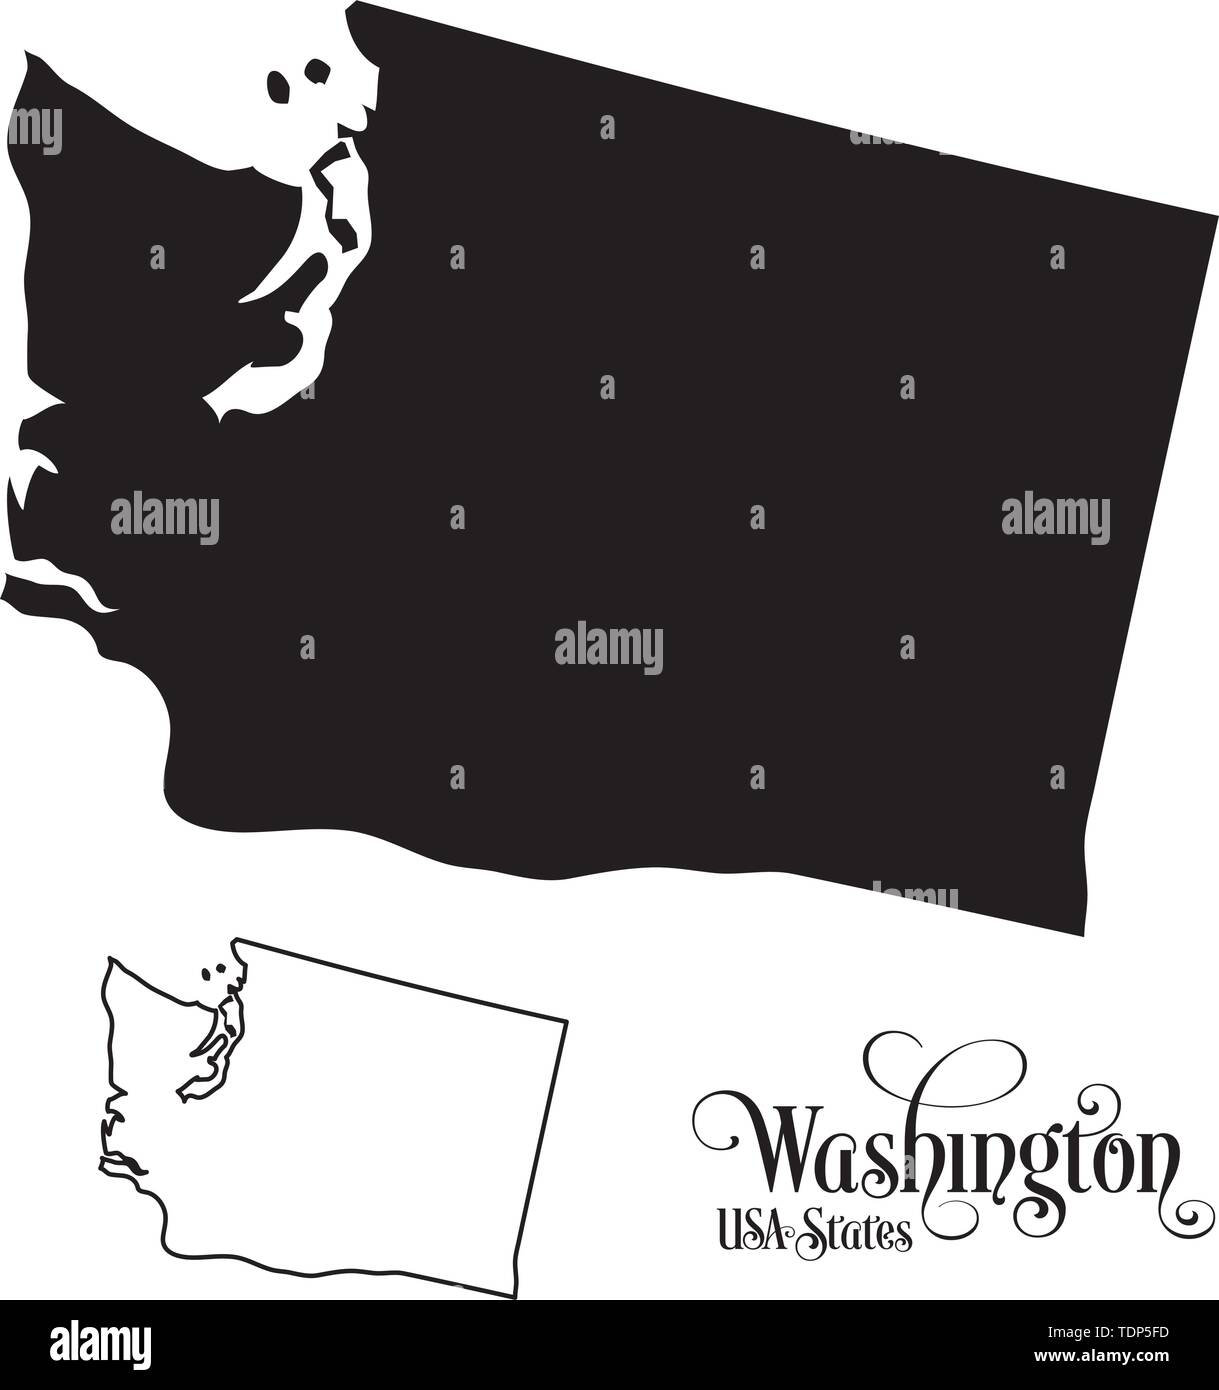 Map of The United States of America (USA) State of Washington - Illustration on White Background. - Stock Vector